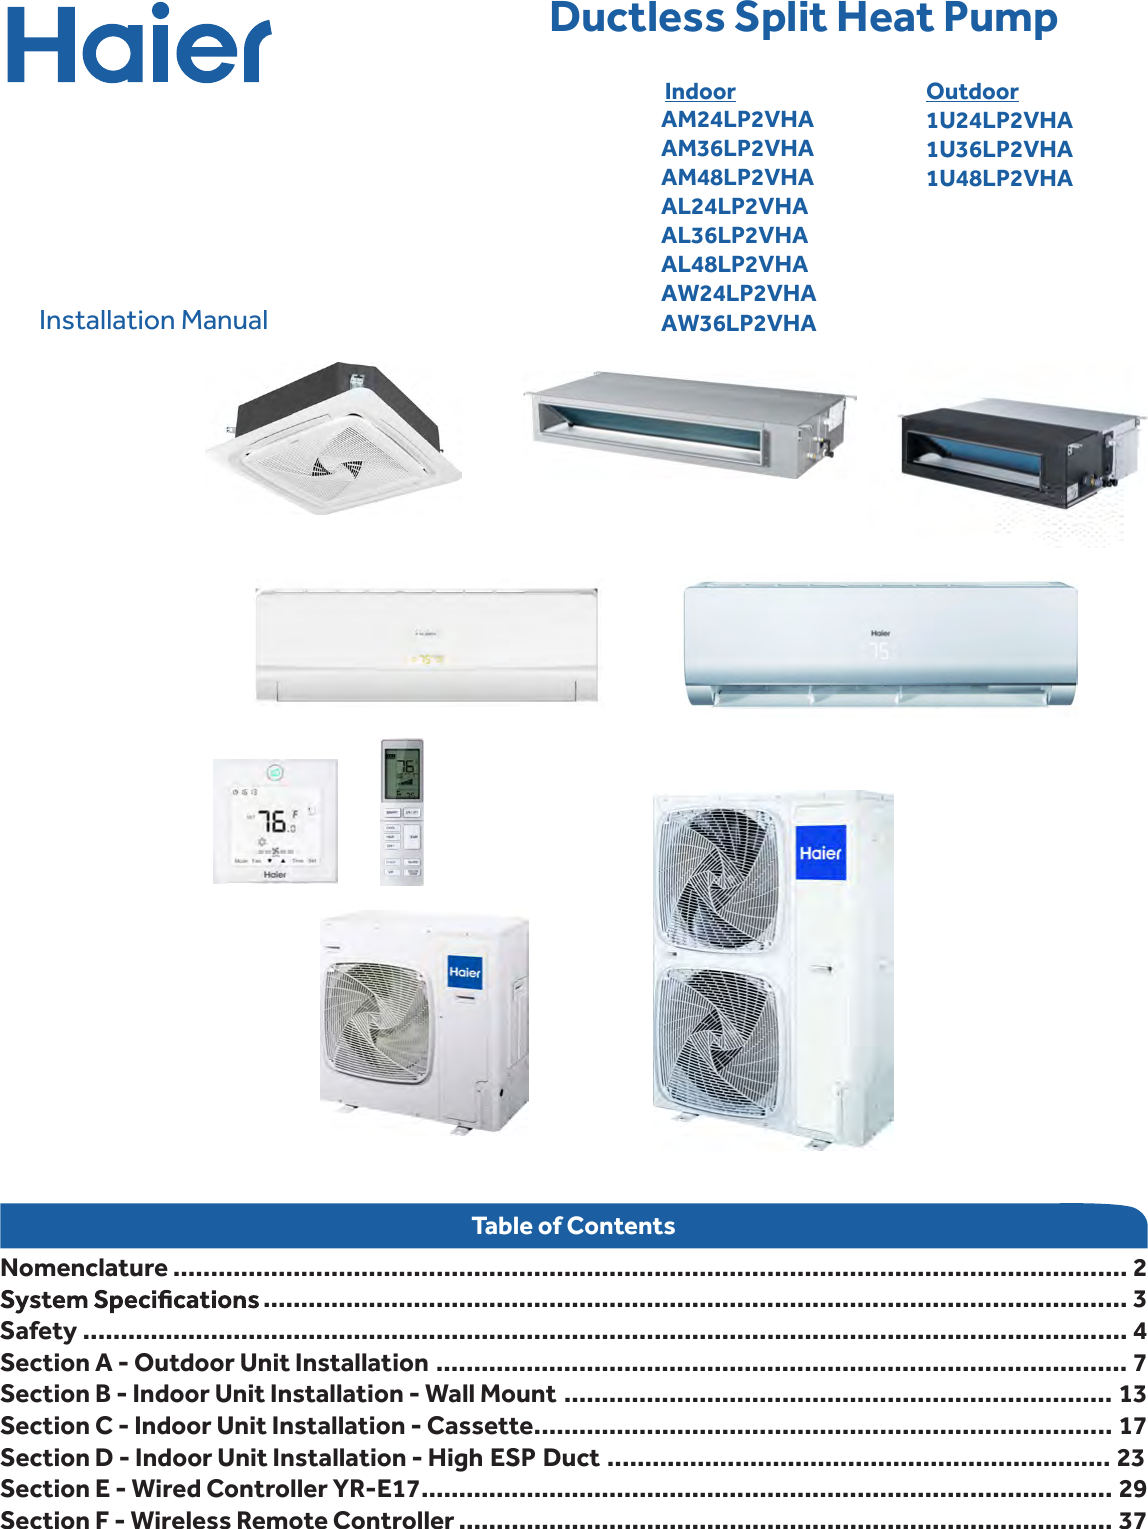 Haier Heat Pump Wiring Diagrams | Wiring Schematic Diagram on hvac compressor, hvac systems diagrams, hvac wire colors, hvac wiring diagrams 101, hvac thermostat, scion stereo wiring diagram, 95 firebird wiring diagram, hvac electrical diagrams, hvac ladder diagrams,